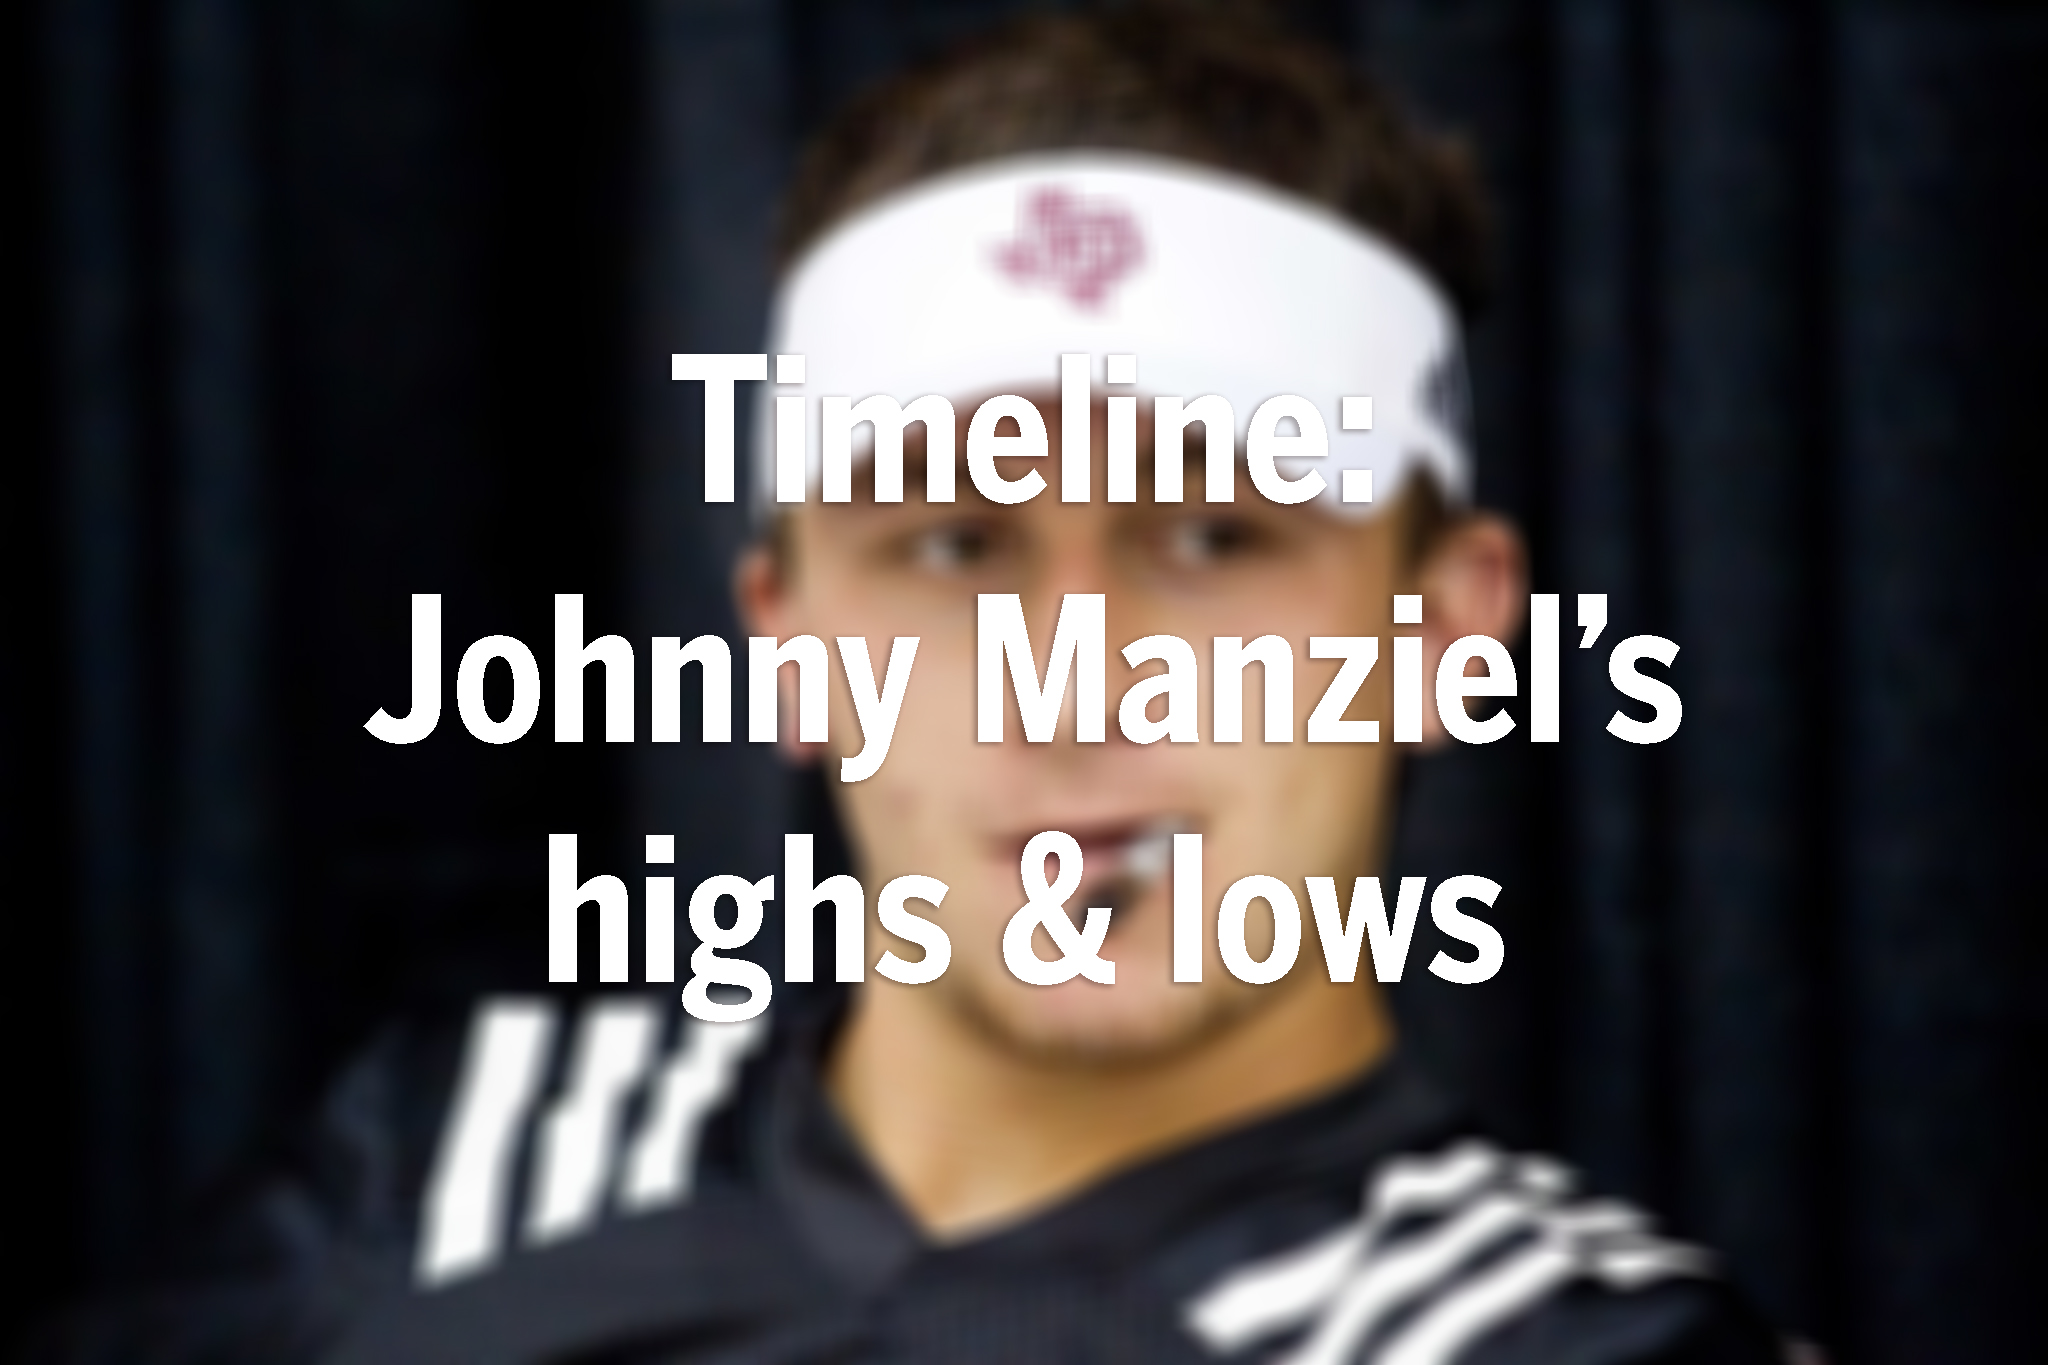 After partying video leaked, Johnny Manziel demoted to third string ...